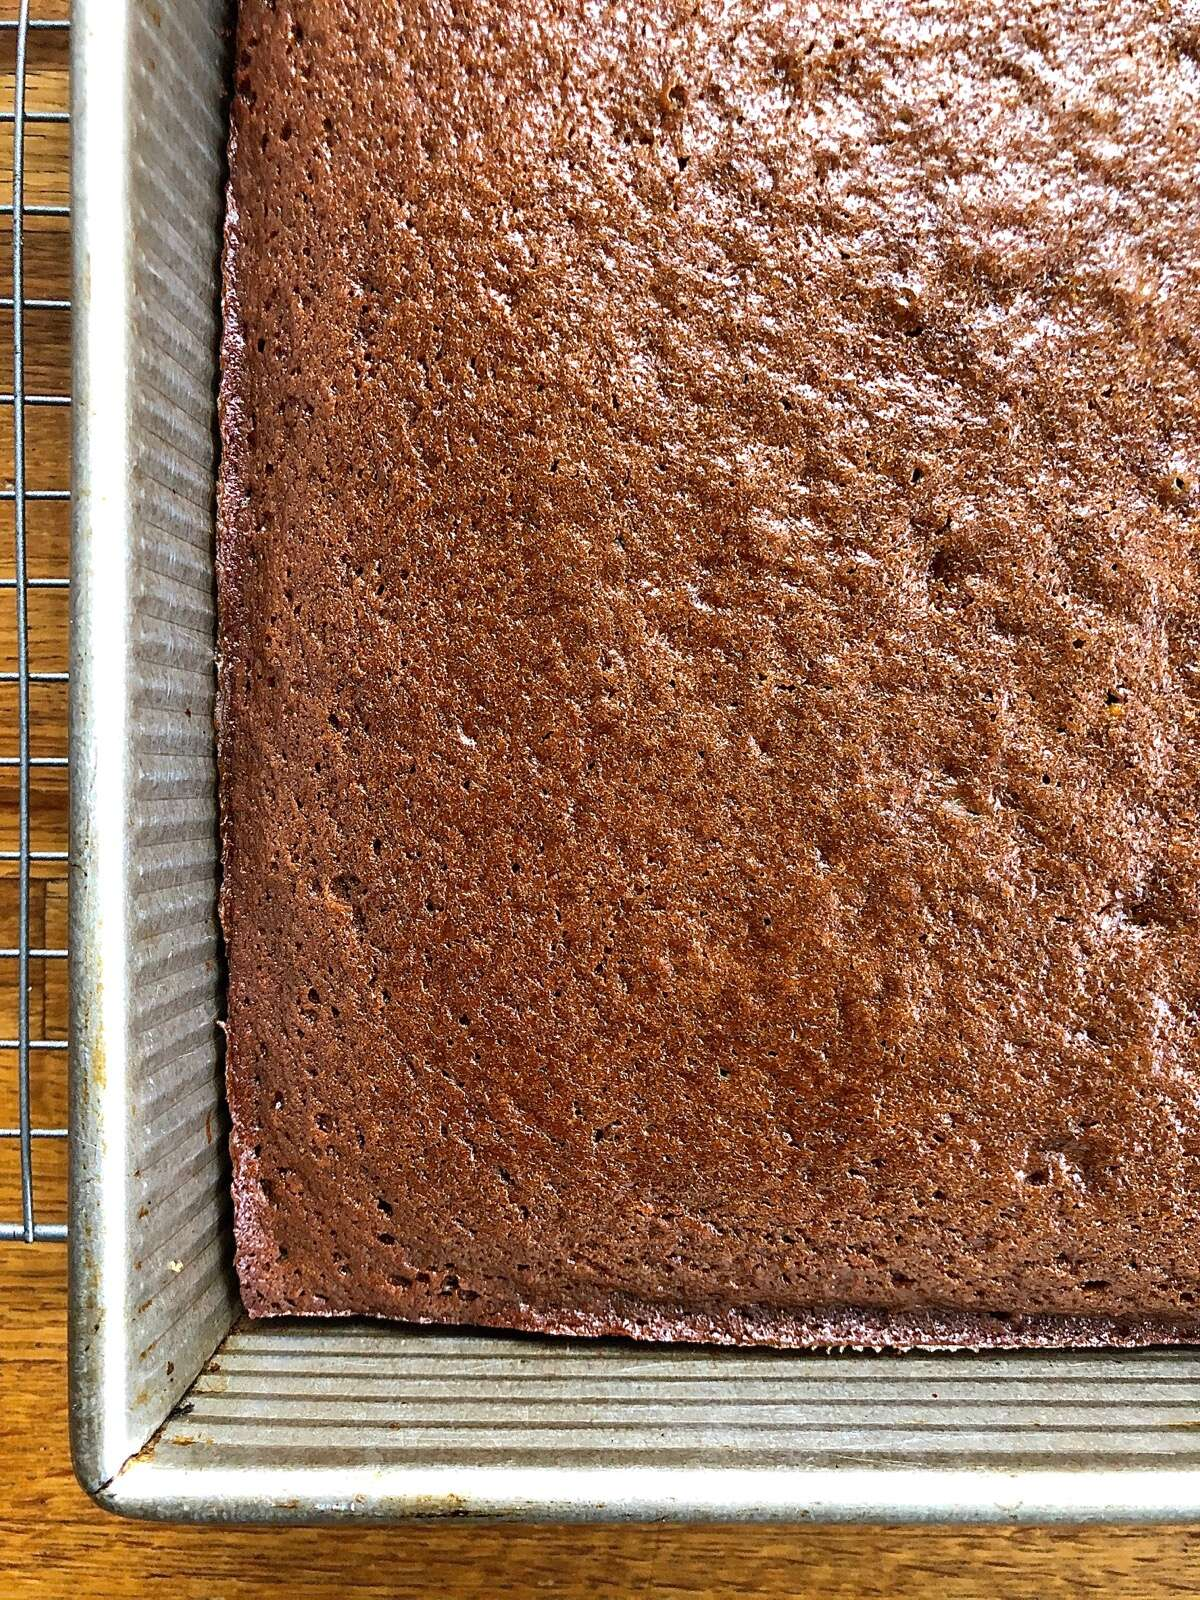 Baked gingerbread in a pan, edges just pulling away from the sides of the pan.